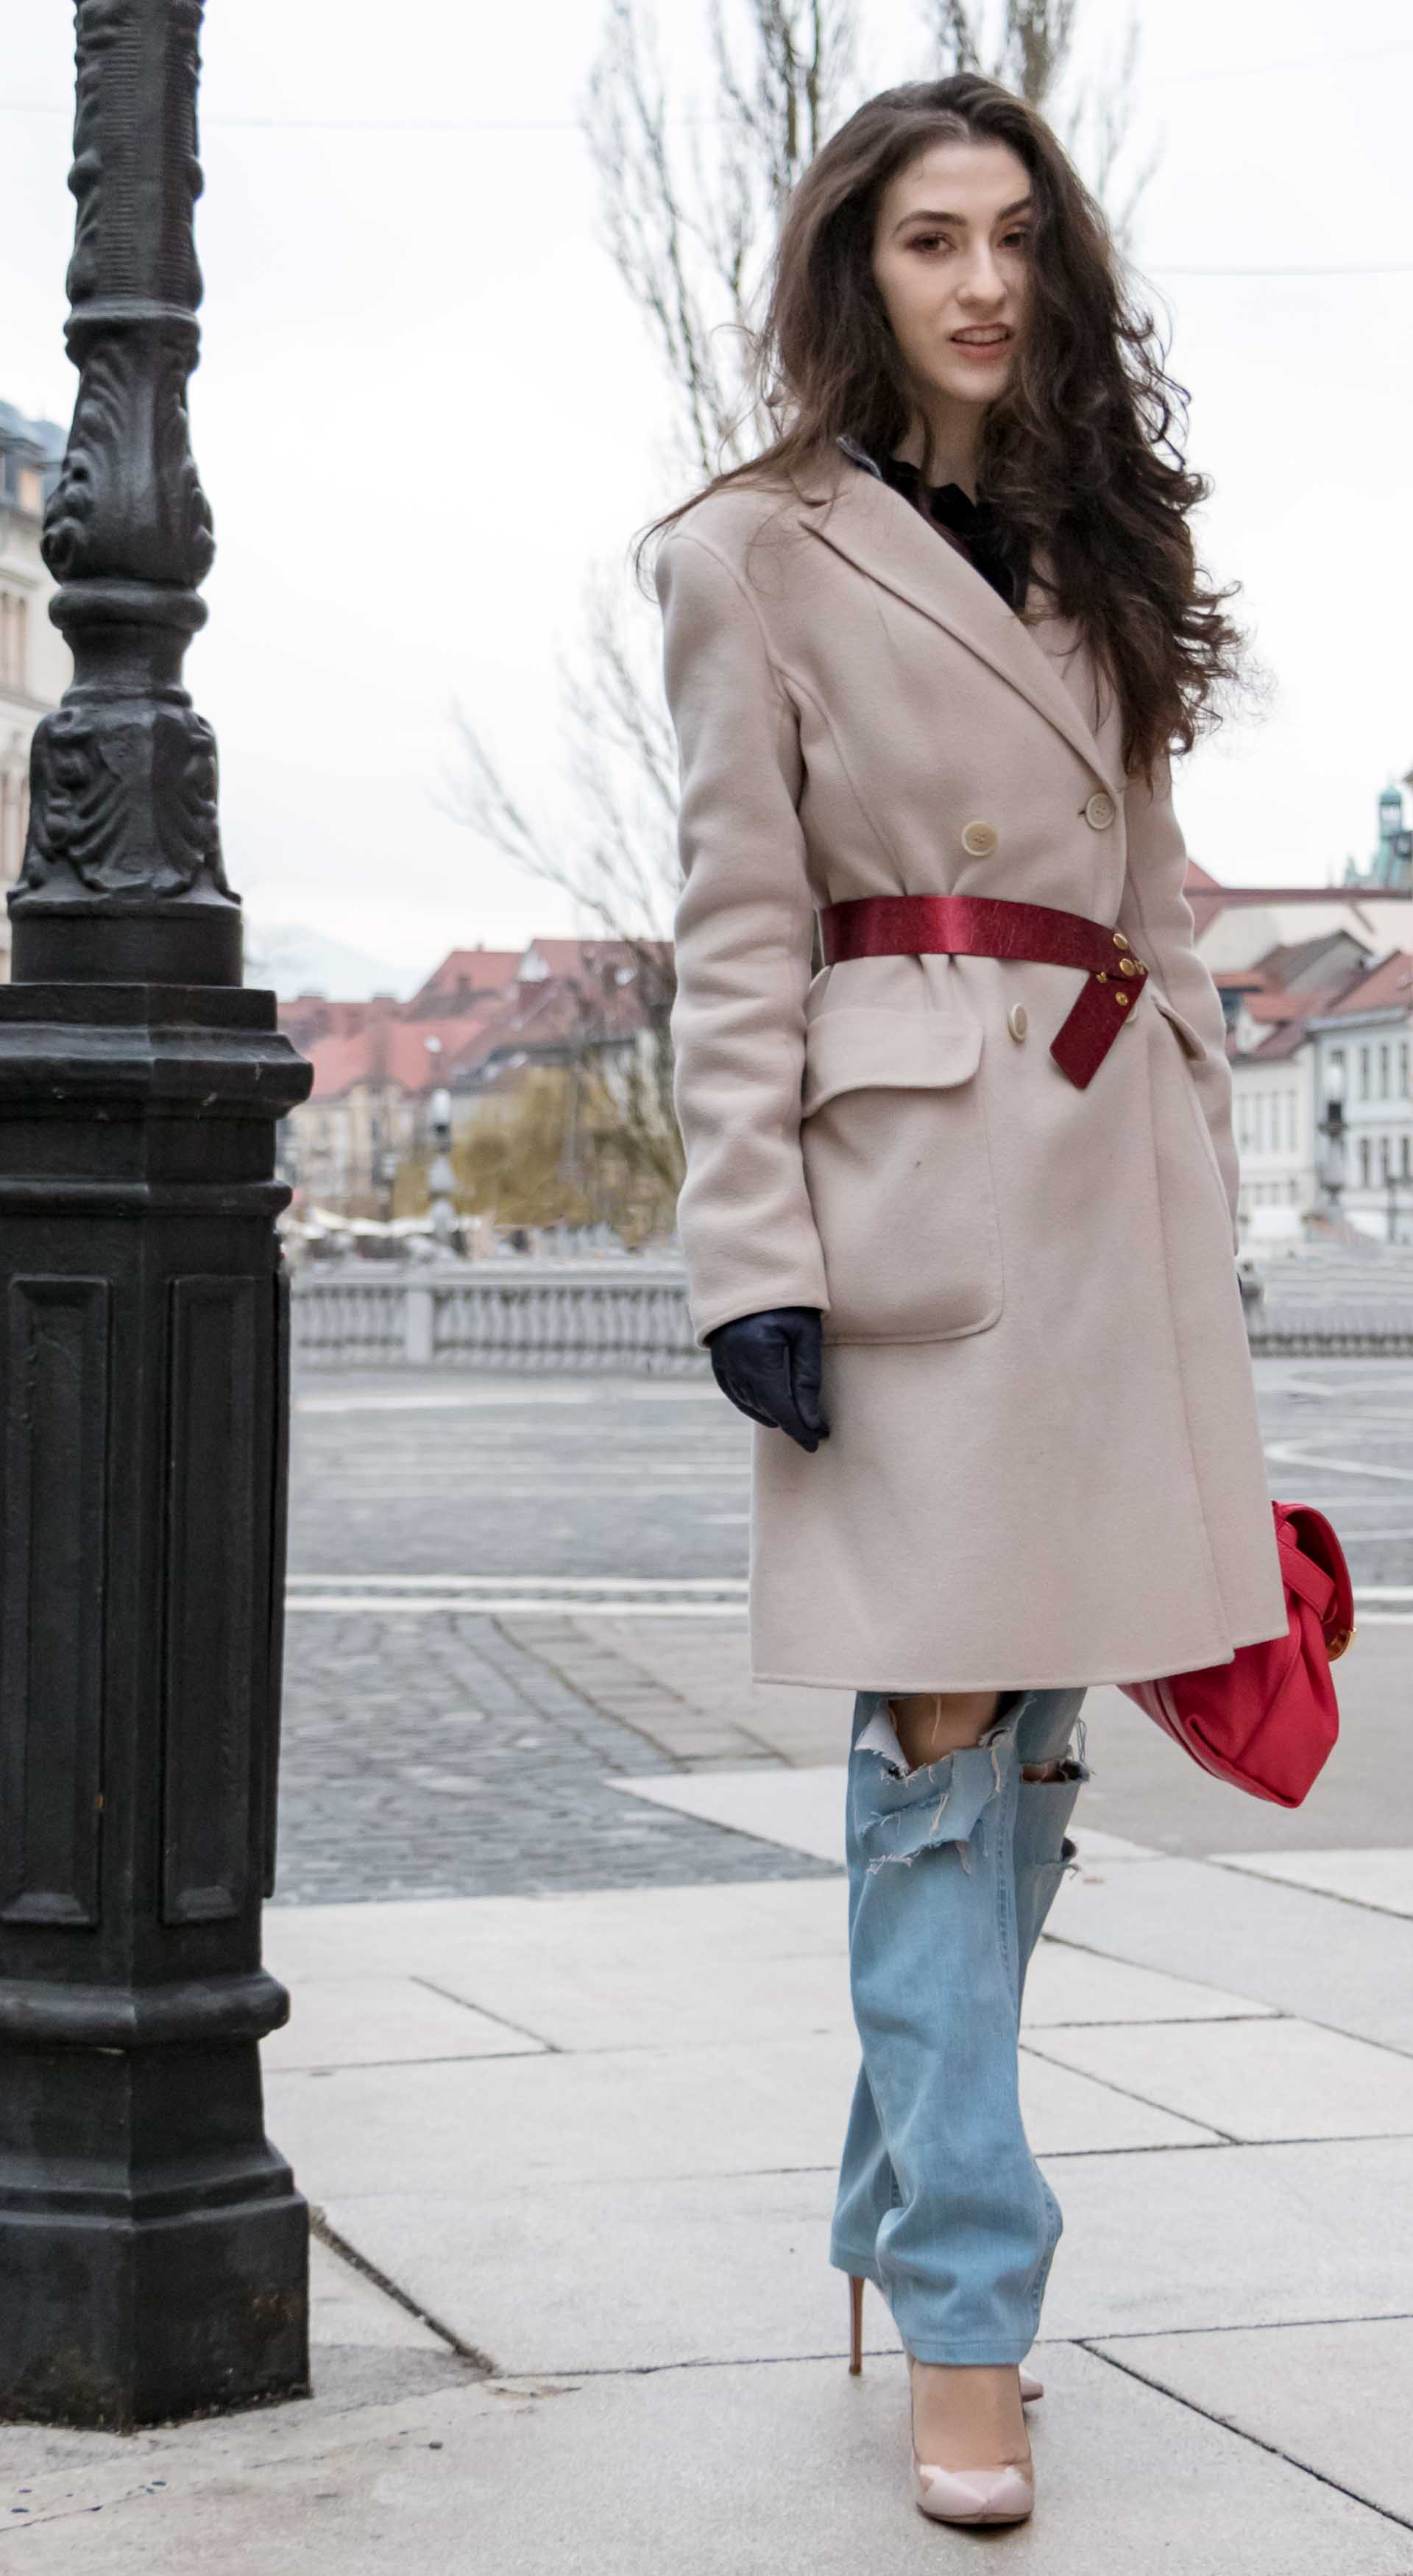 Fashion Blogger Veronika Lipar of Brunette from Wall Street dressed in distressed blue Levi's jeans, off-white double breasted Weekend Maxmara coat, red dangling belt, blush Gianvito Rossi plexi pumps, See by Chloe pink top handle bag, blue leather gloves on the street of Ljubljana